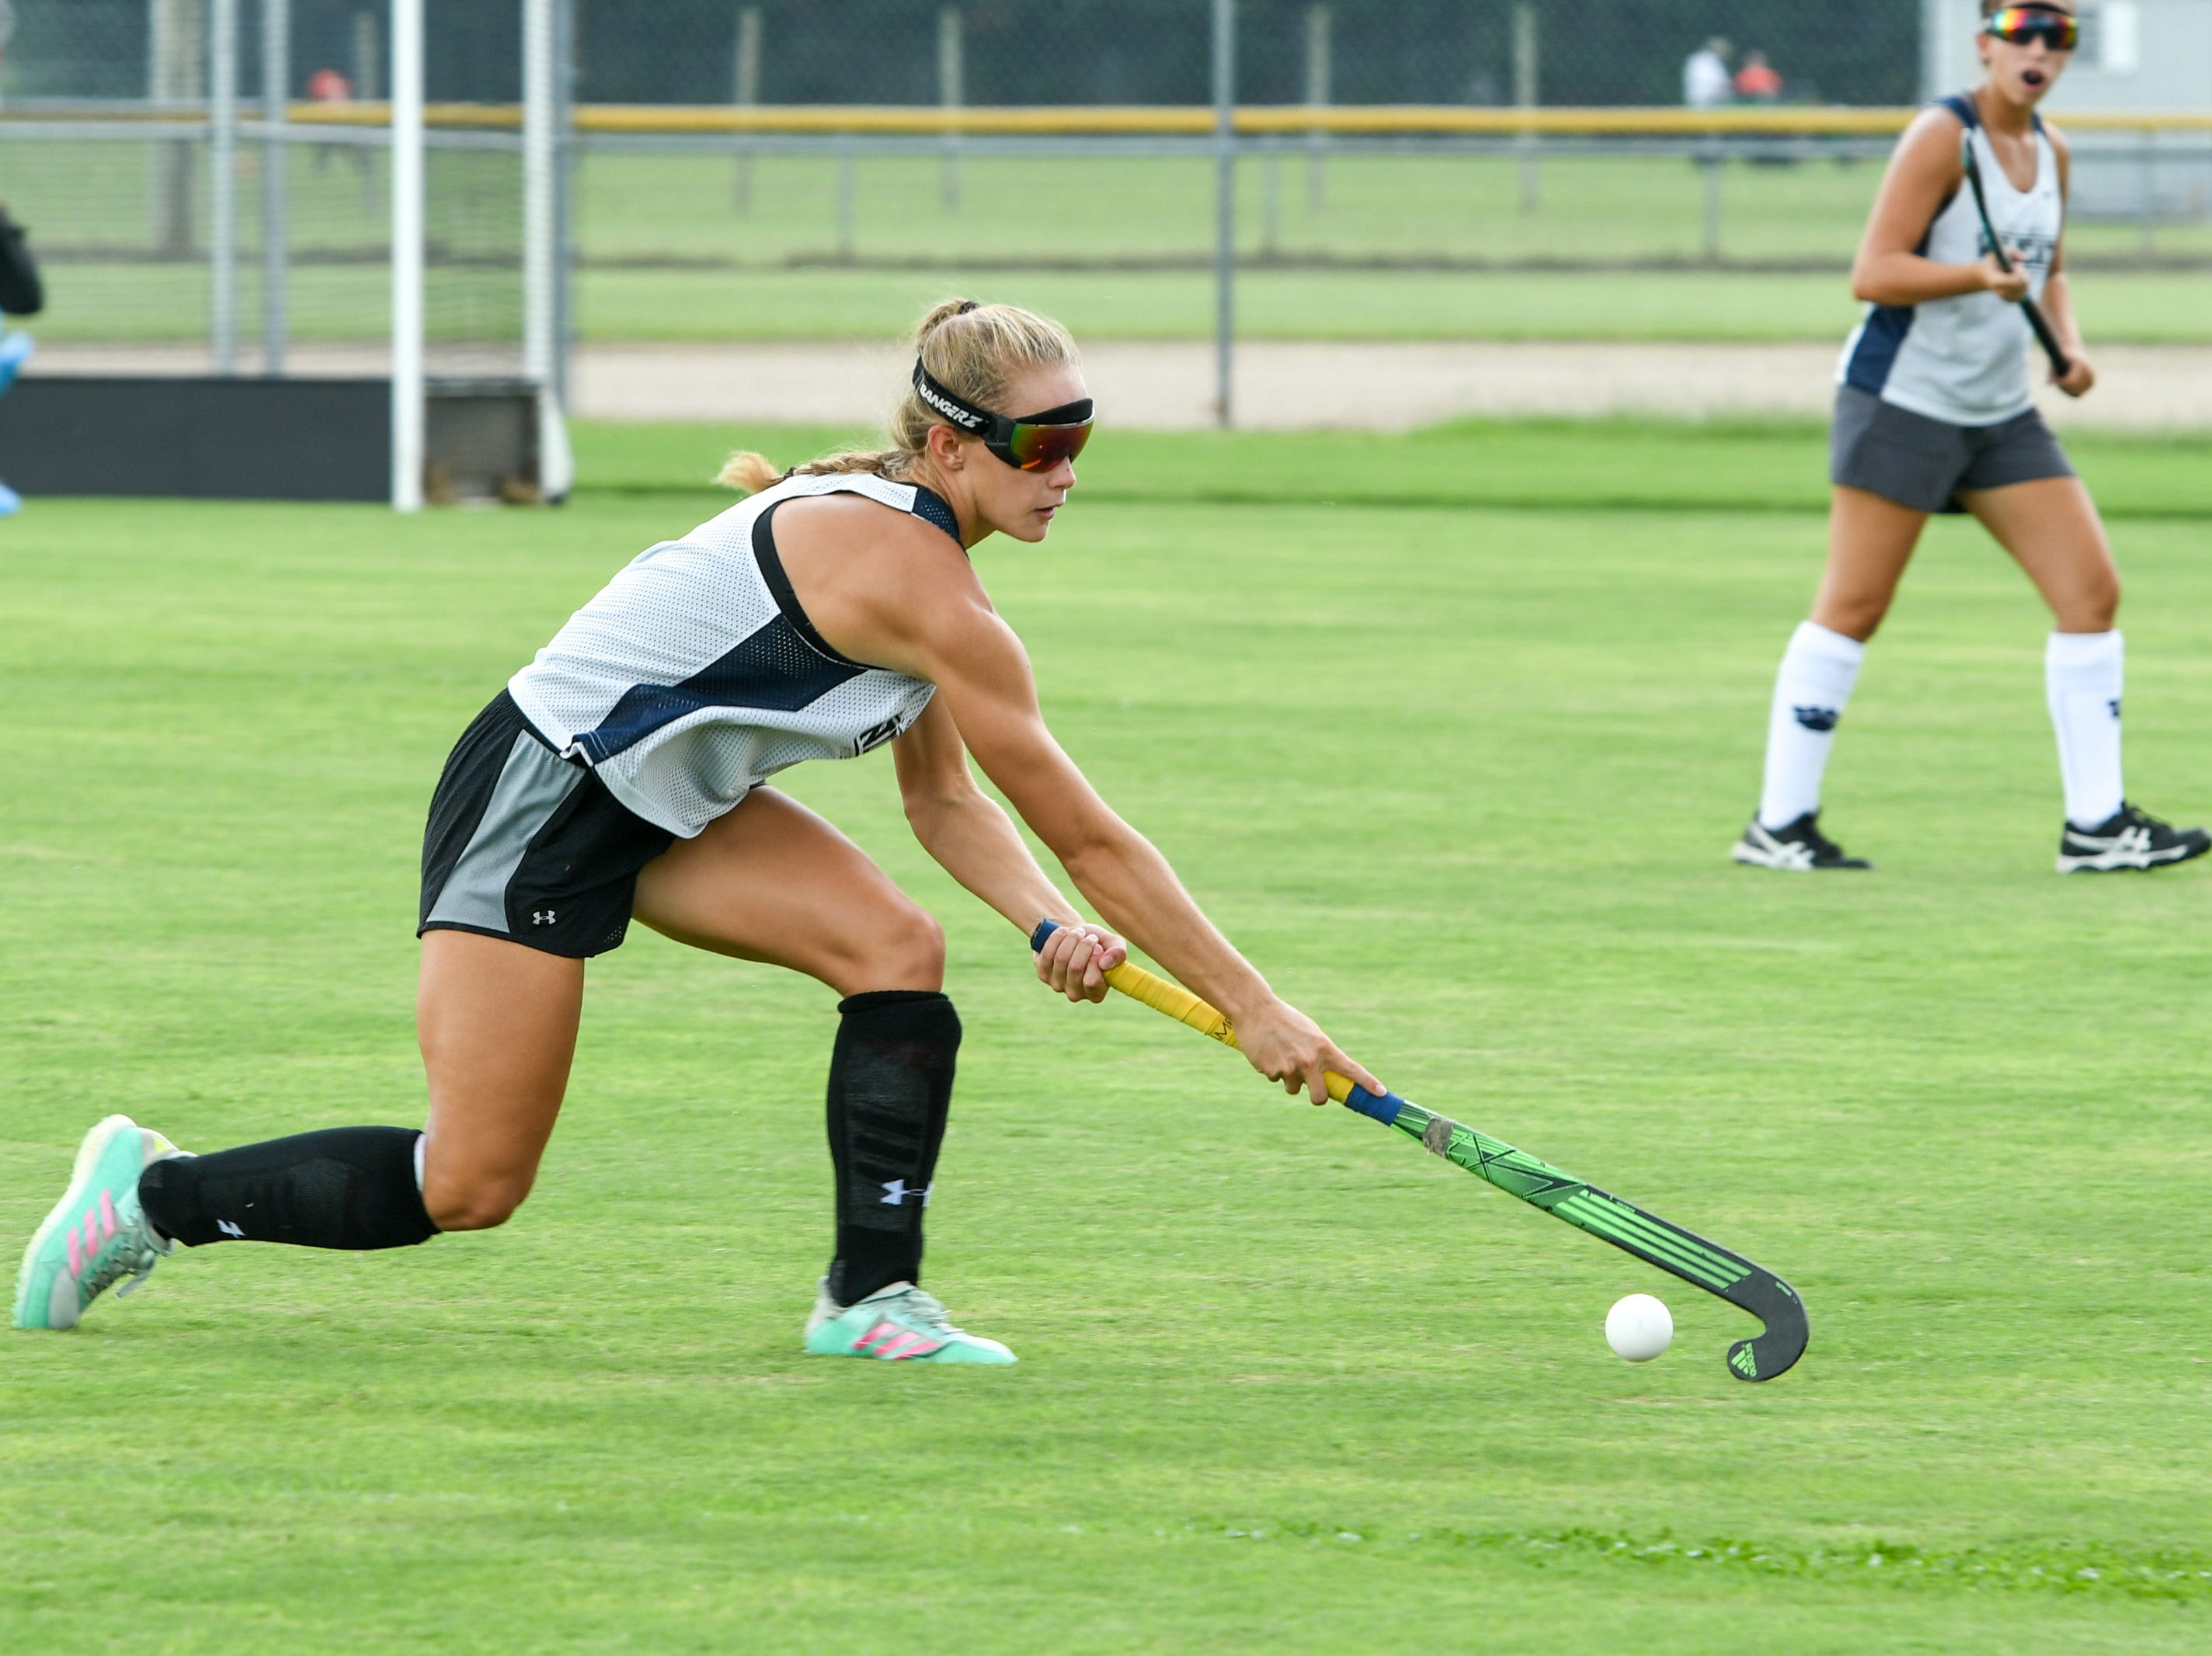 Senior Ashlyn Carr reaches for the ball during a scrimmage at Delmar field hockey practice on Wednesday, Sept. 5.